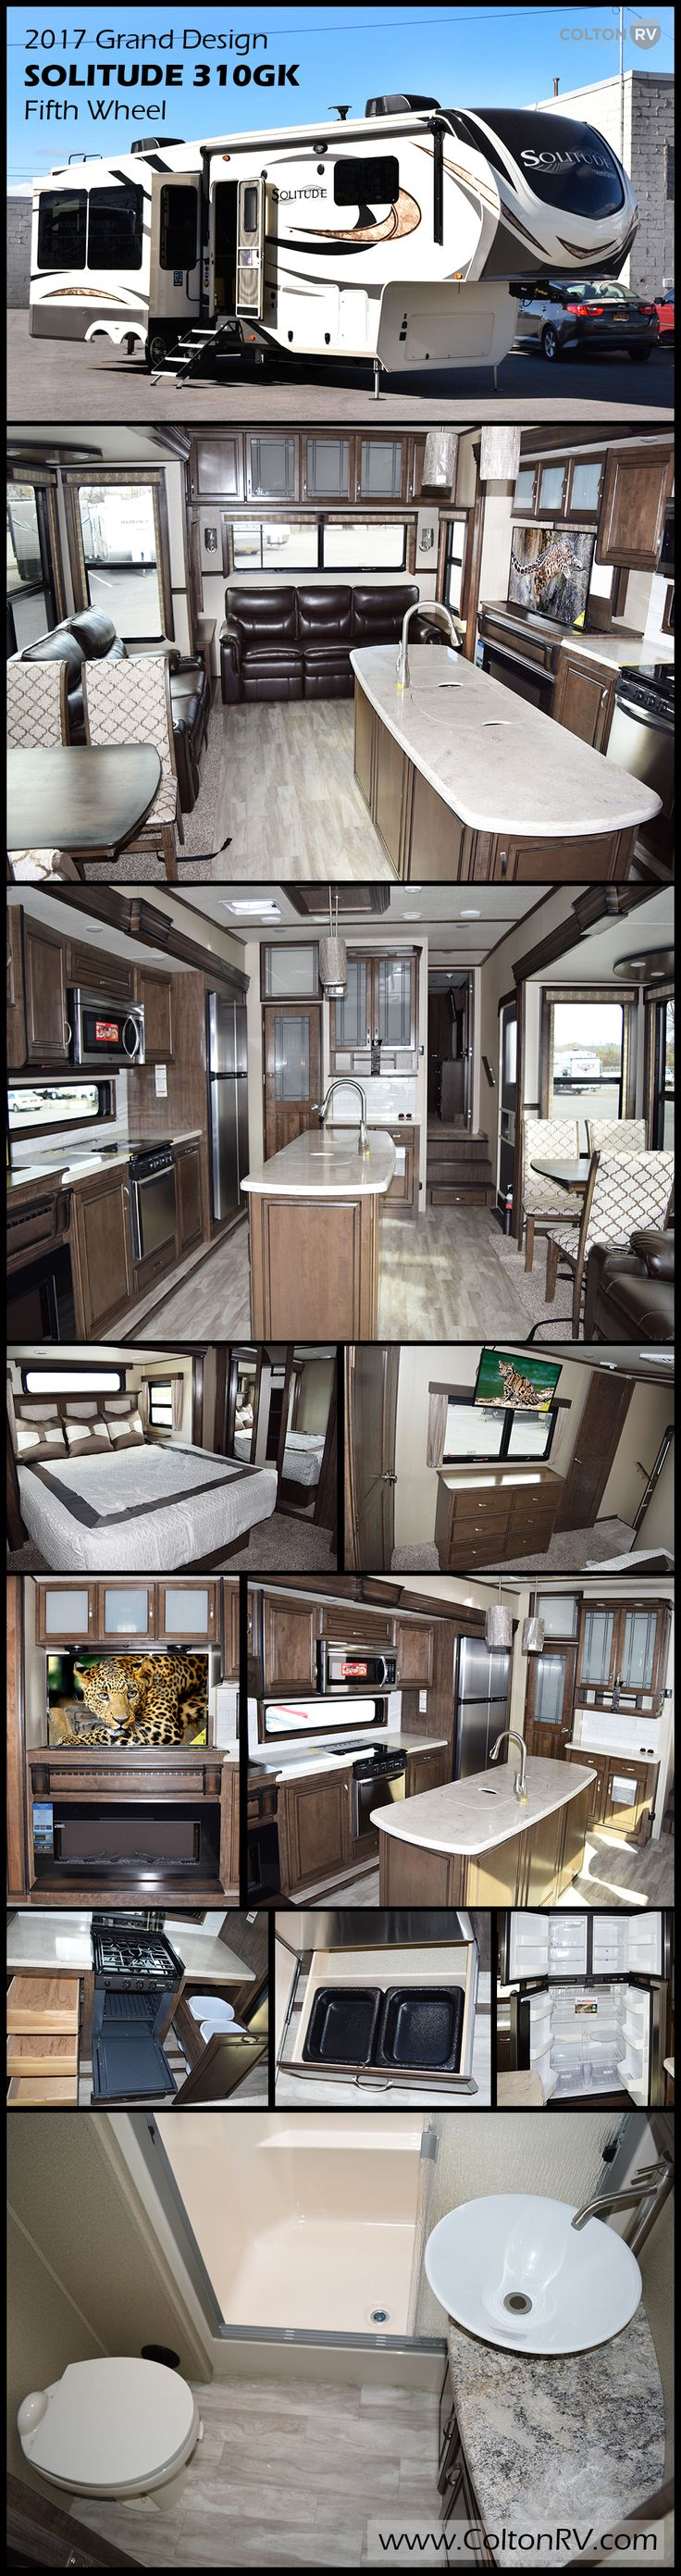 Enjoy camping in this GRAND DESIGN SOLITUDE 310GK fifth wheel, where you will find rear living layout, triple slides for added interior space, plus a convenient kitchen island with double sinks. Get cozy in the theater seating while you watch a movie on the telescoping TV with a cozy fireplace beneath. The tri-fold sofa along the rear wall is perfect for additional sleeping space. There is so much more in this RV you are sure to love!